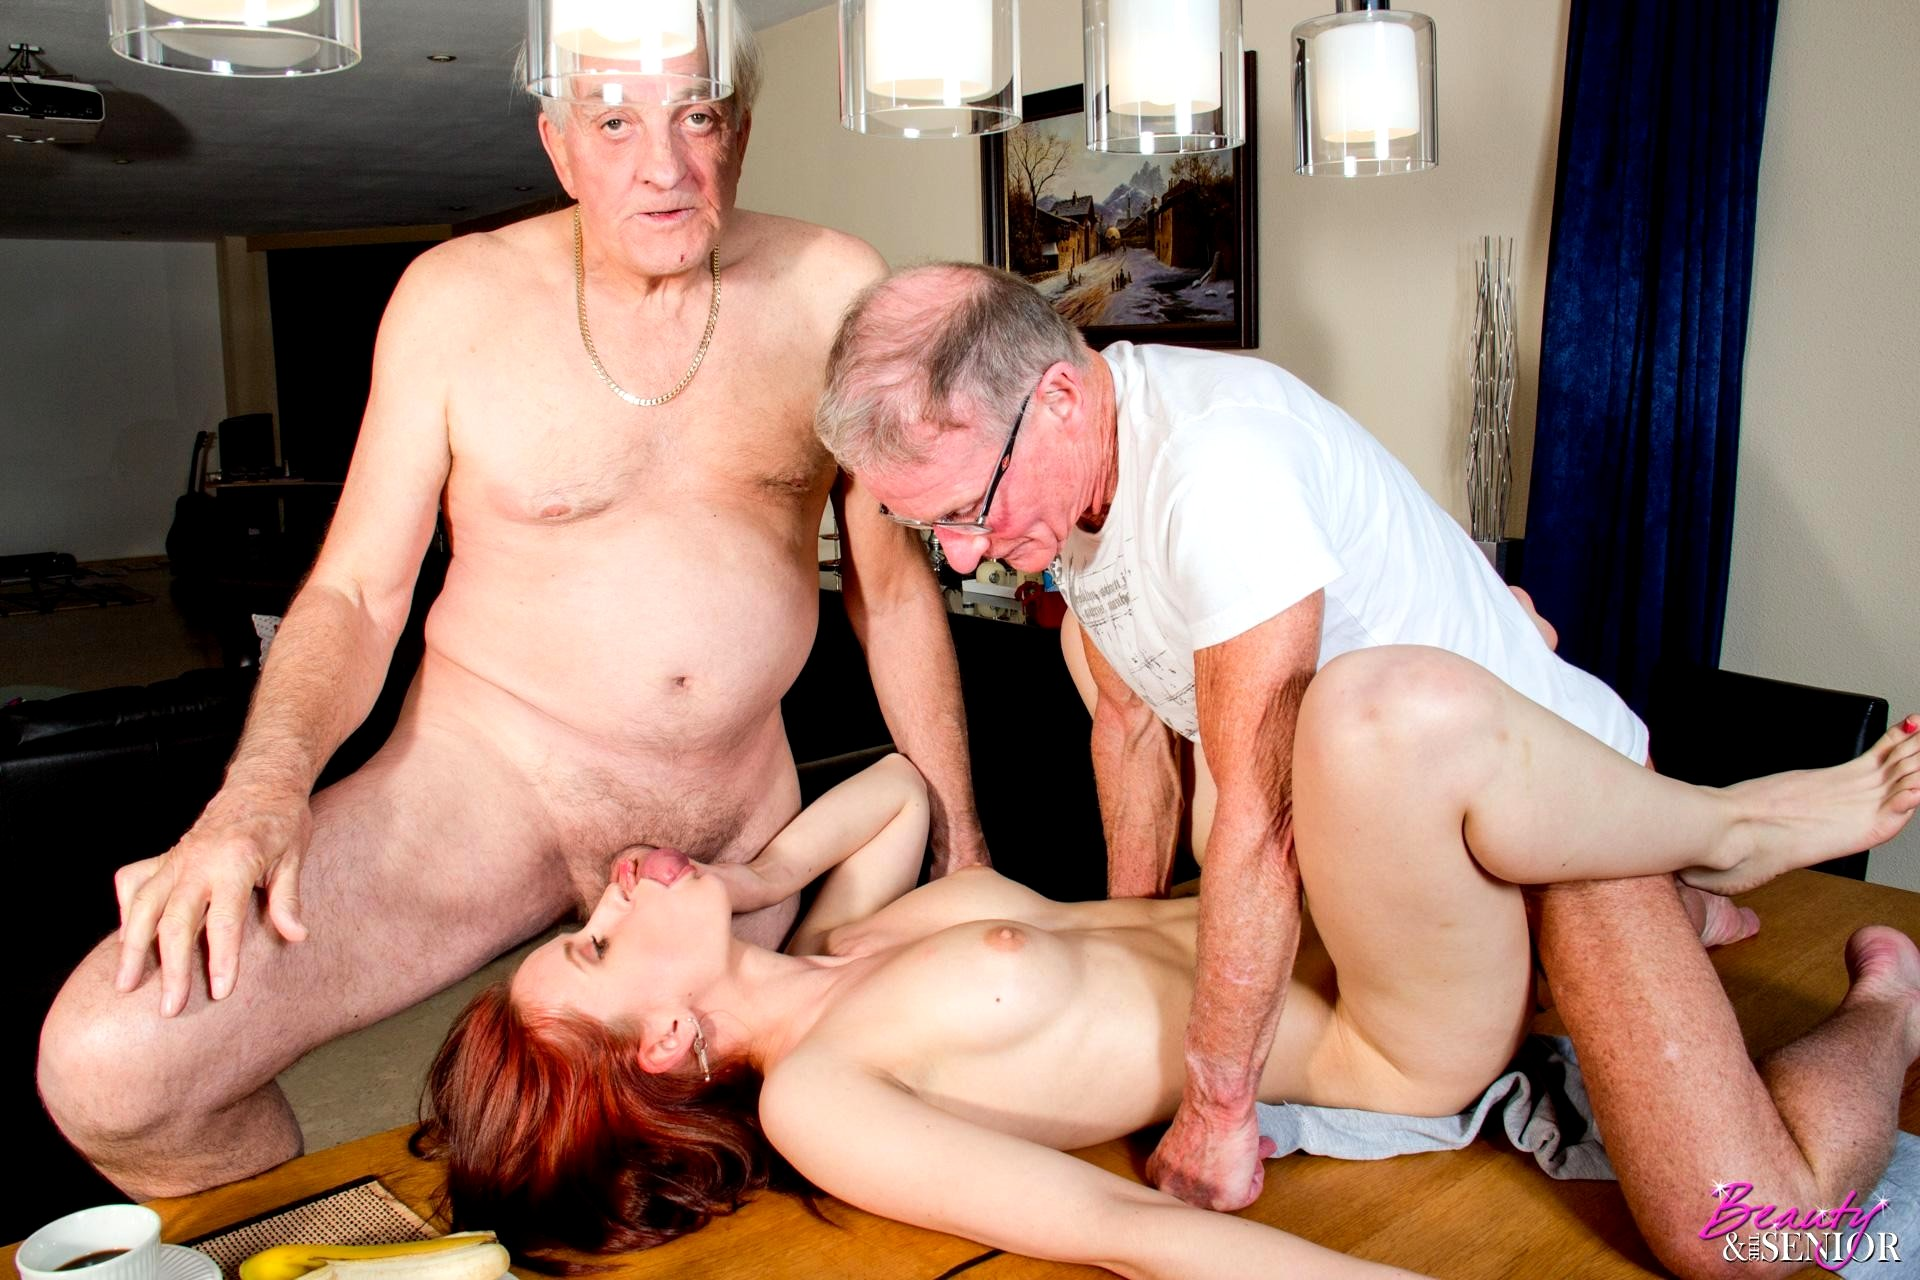 Bondage some old man porn movies